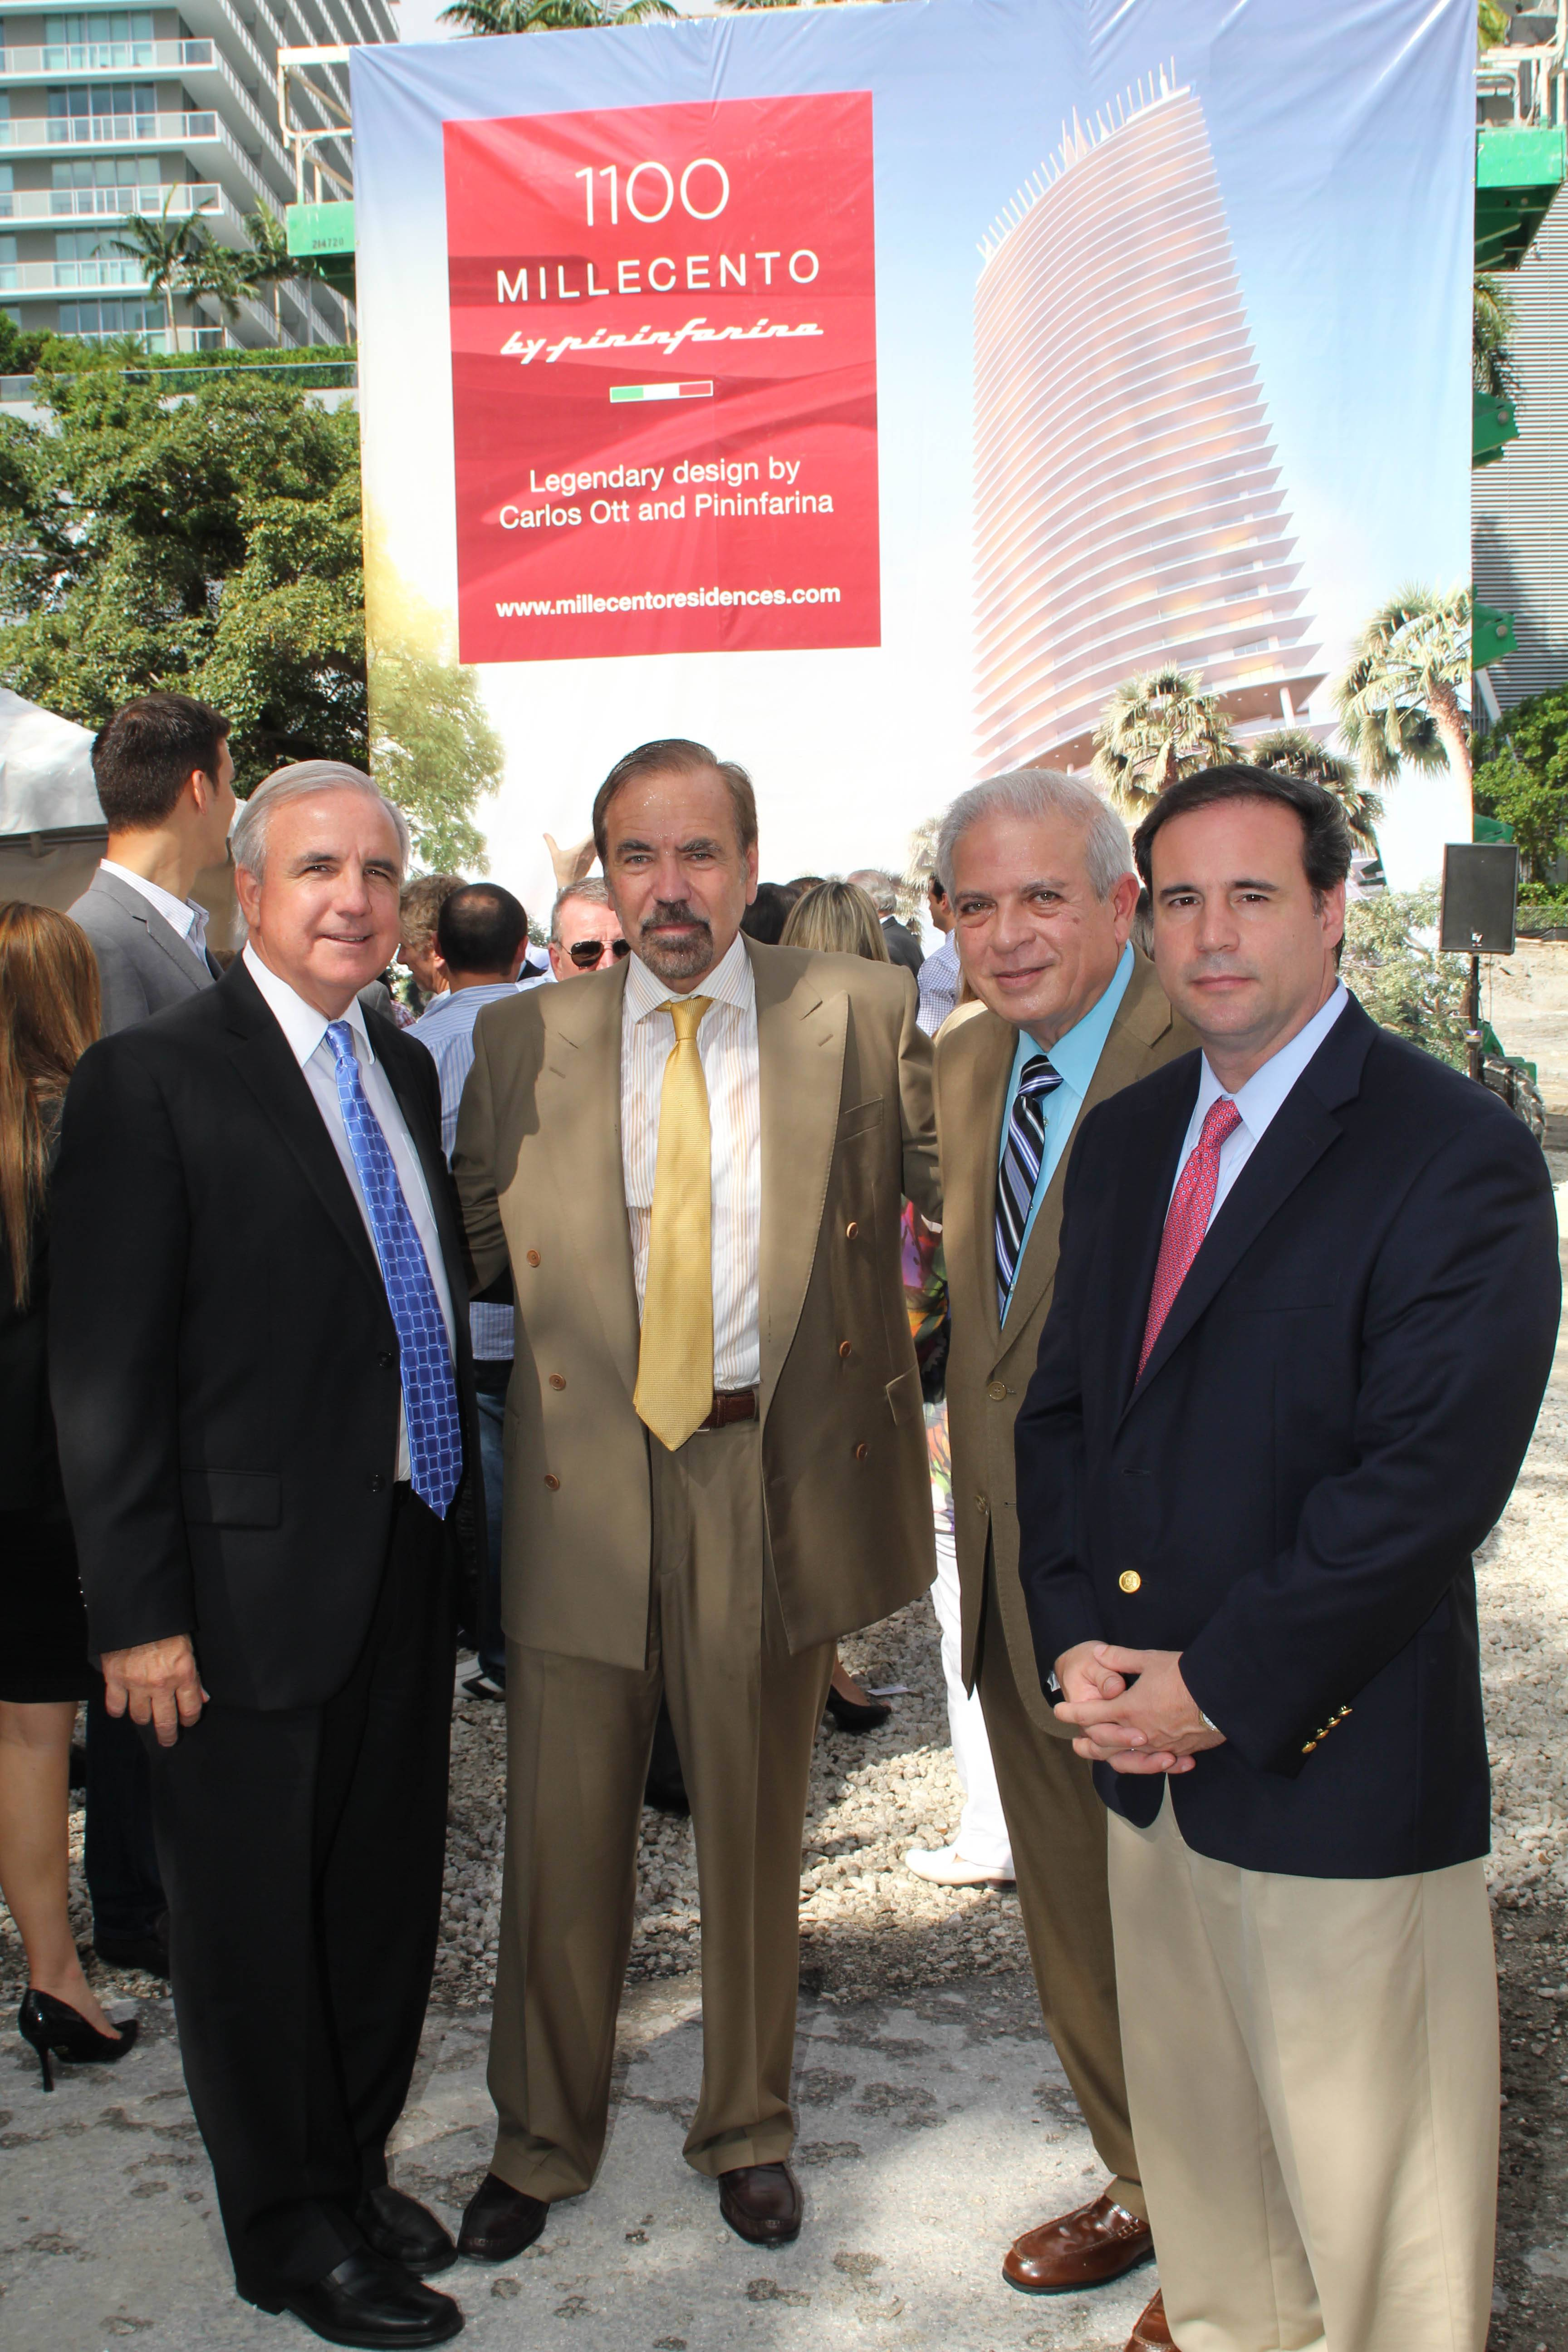 Mayor Gimenez, Jorge Perez, Mayor Regalado, Commissioner Carollo